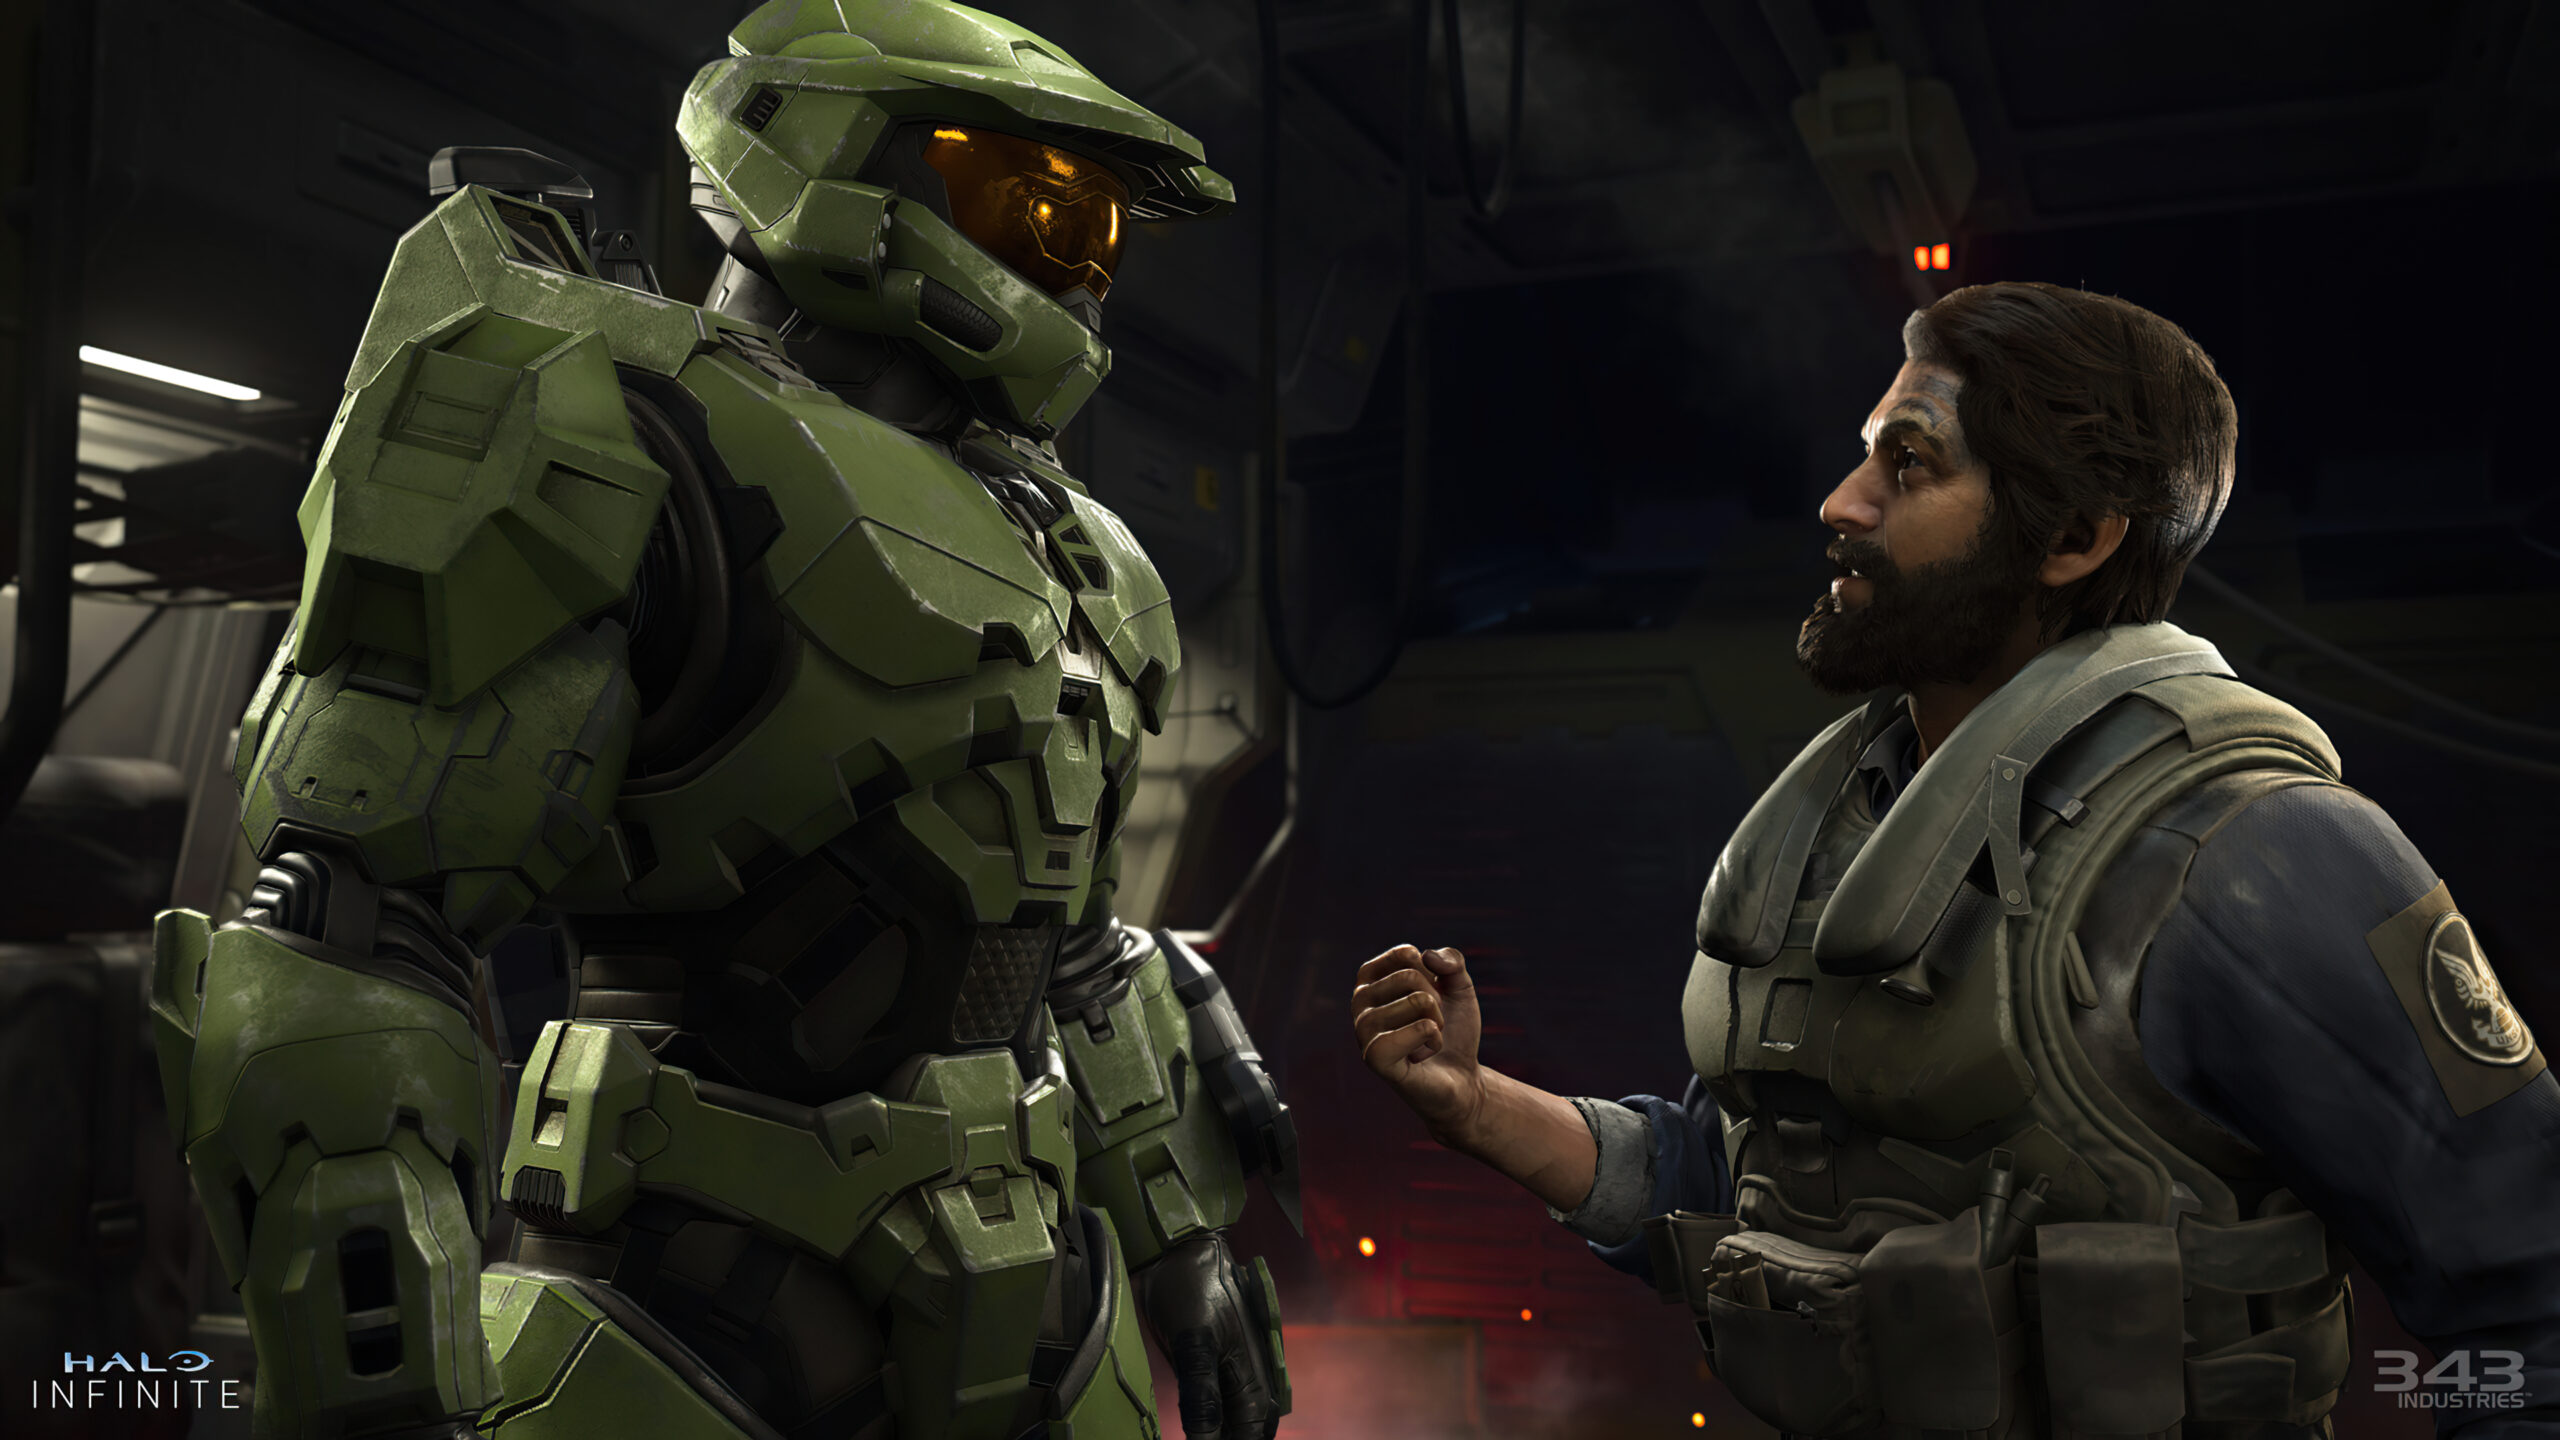 Halo Infinite Q A We Re Continuing From Halo 5 In Ways People Aren T Expecting It S Not Cookie Cutter